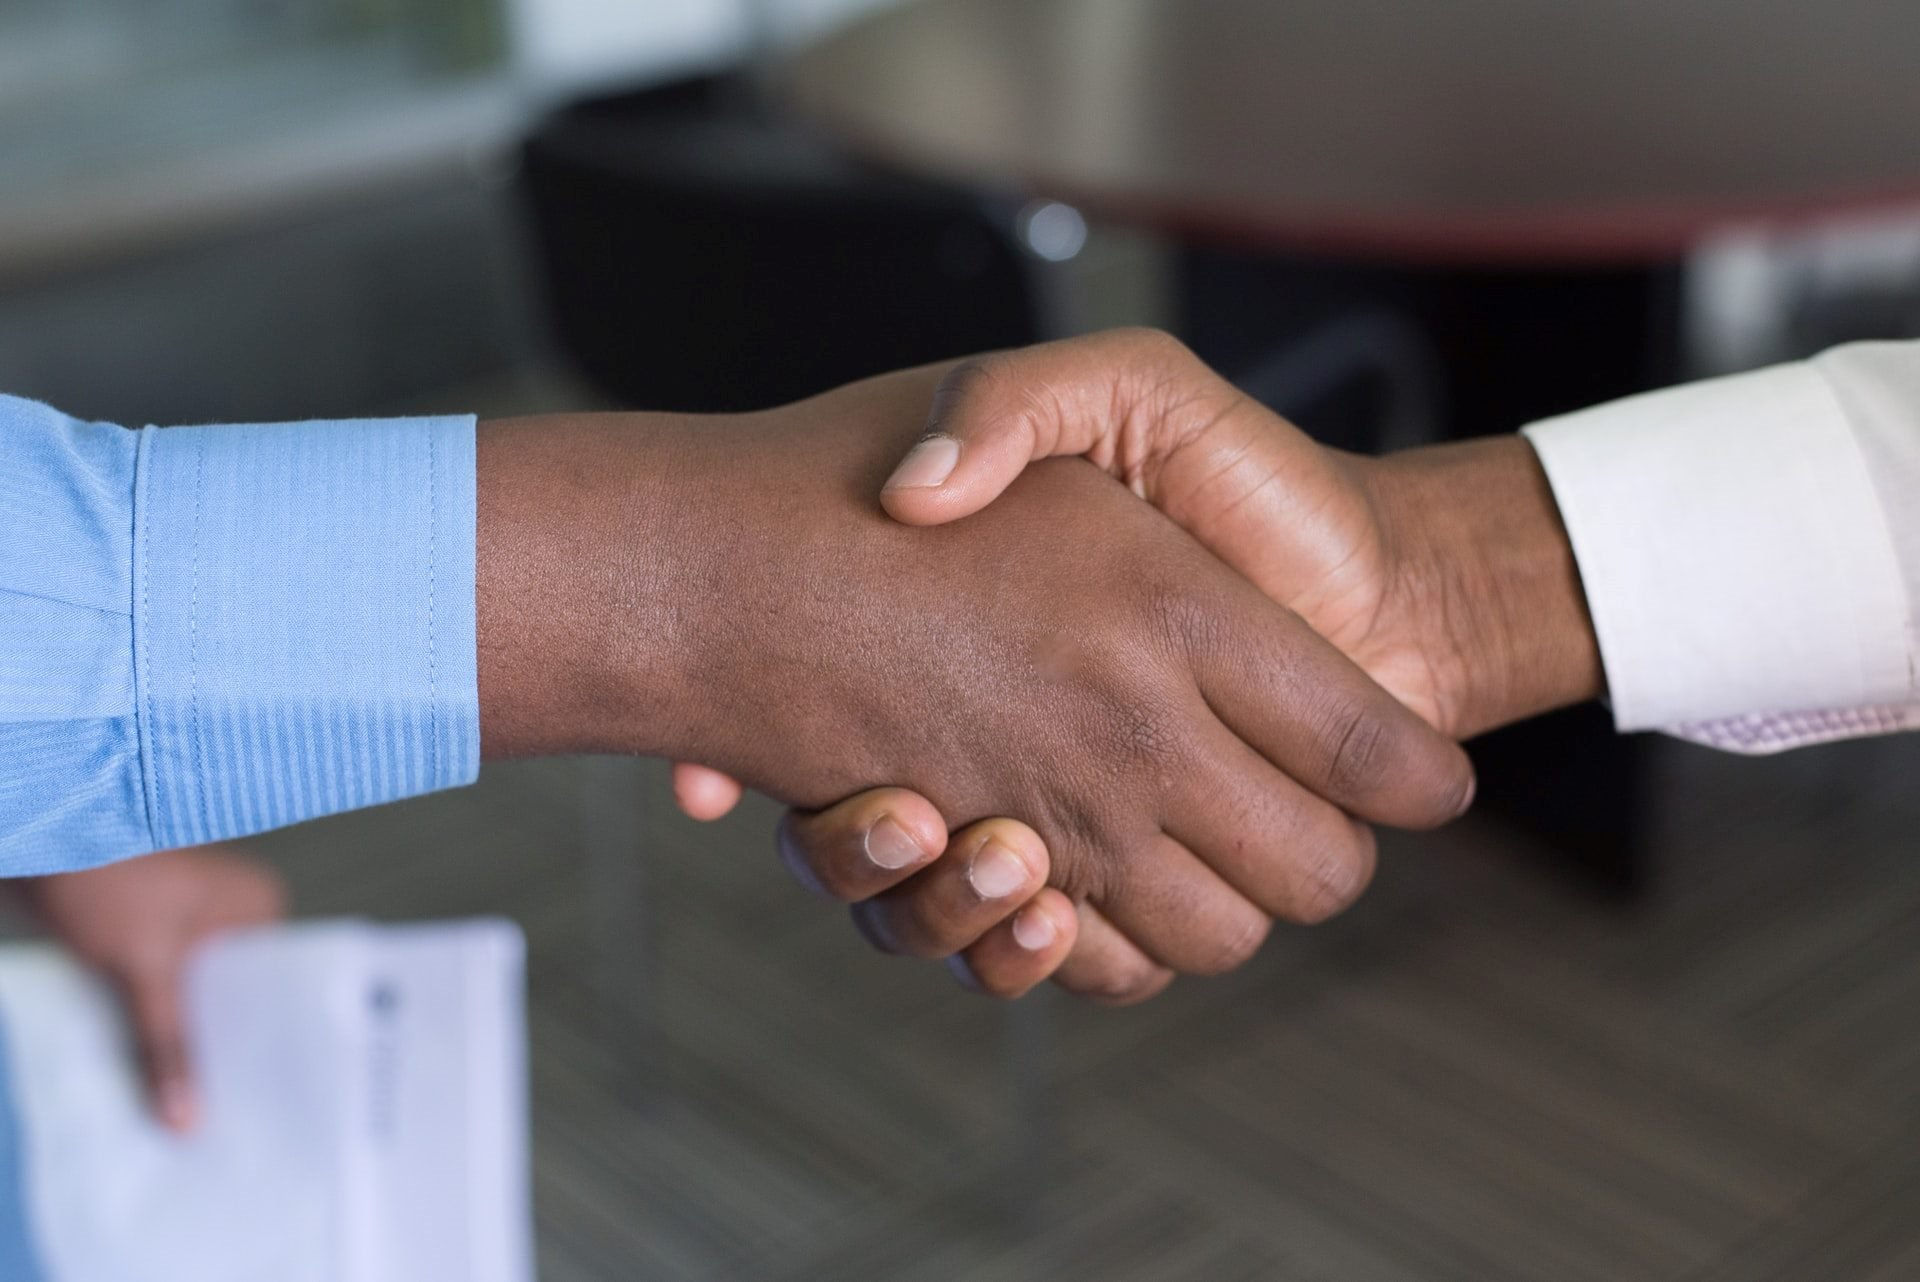 shaking hands in business setting